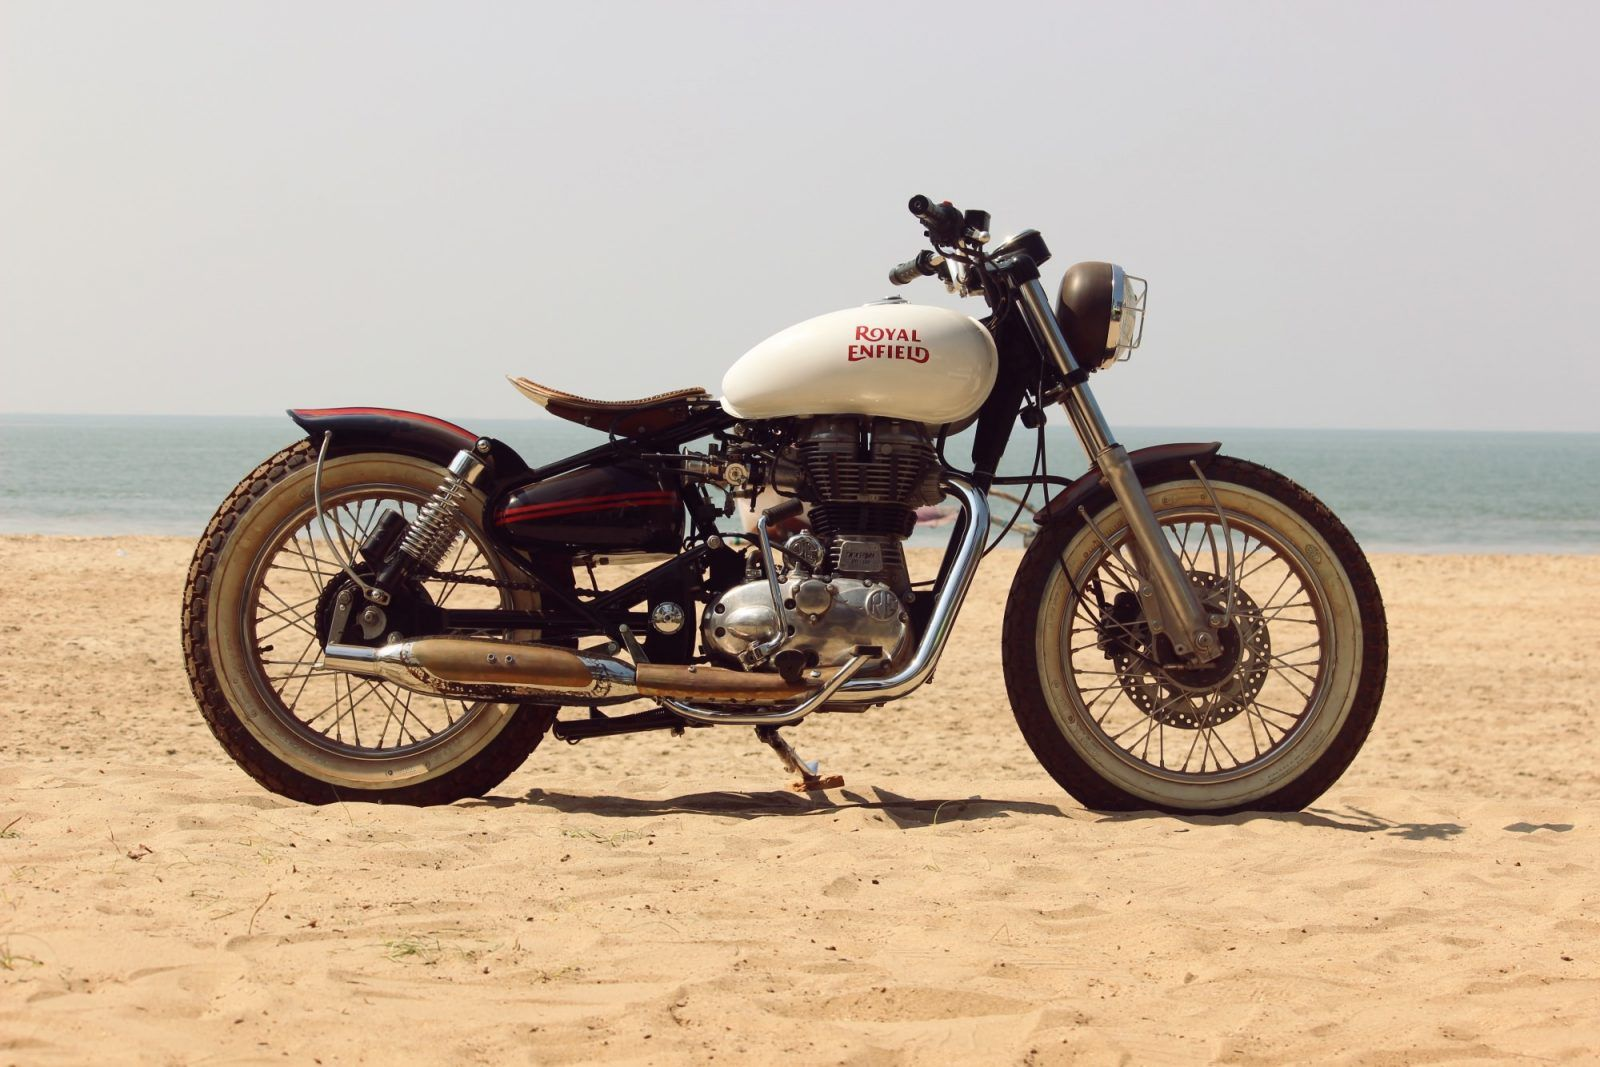 Bullet and more from Royal Enfield